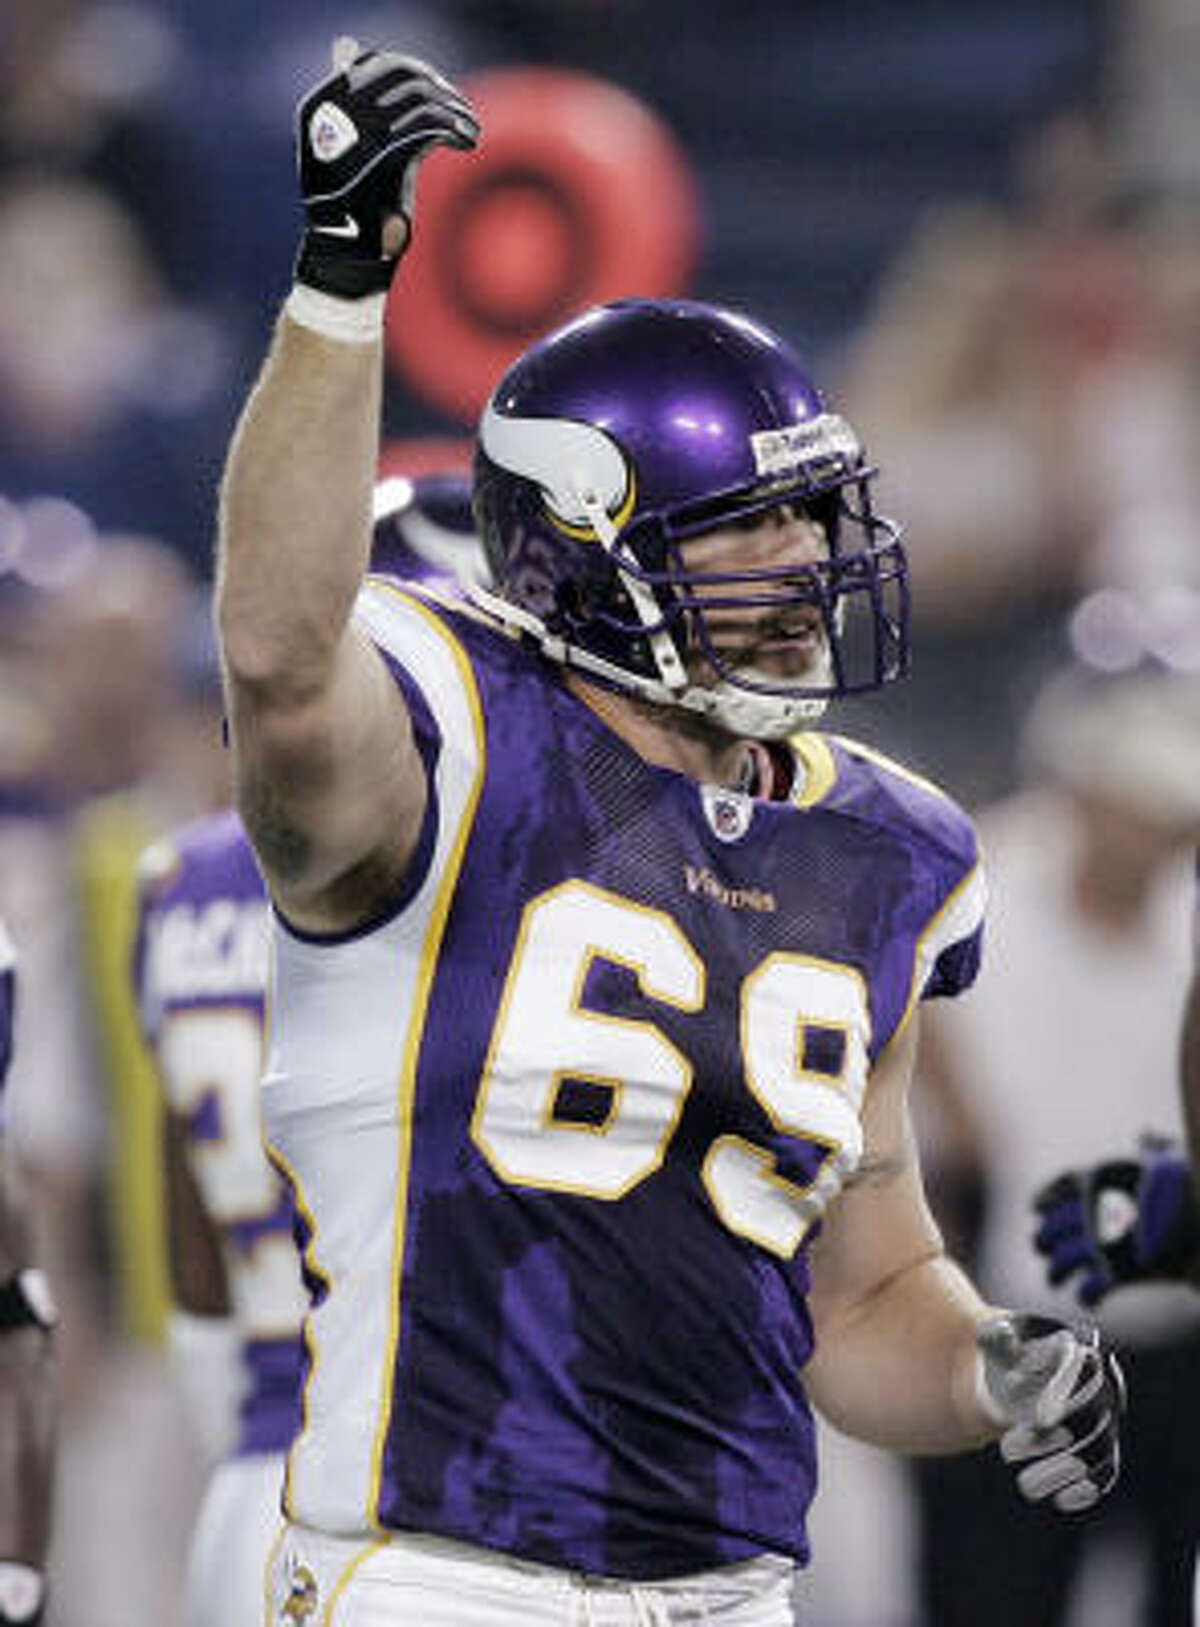 Jared Allen attempted to apologize to Matt Schaub after the game, saying he was slipping when he made contact.